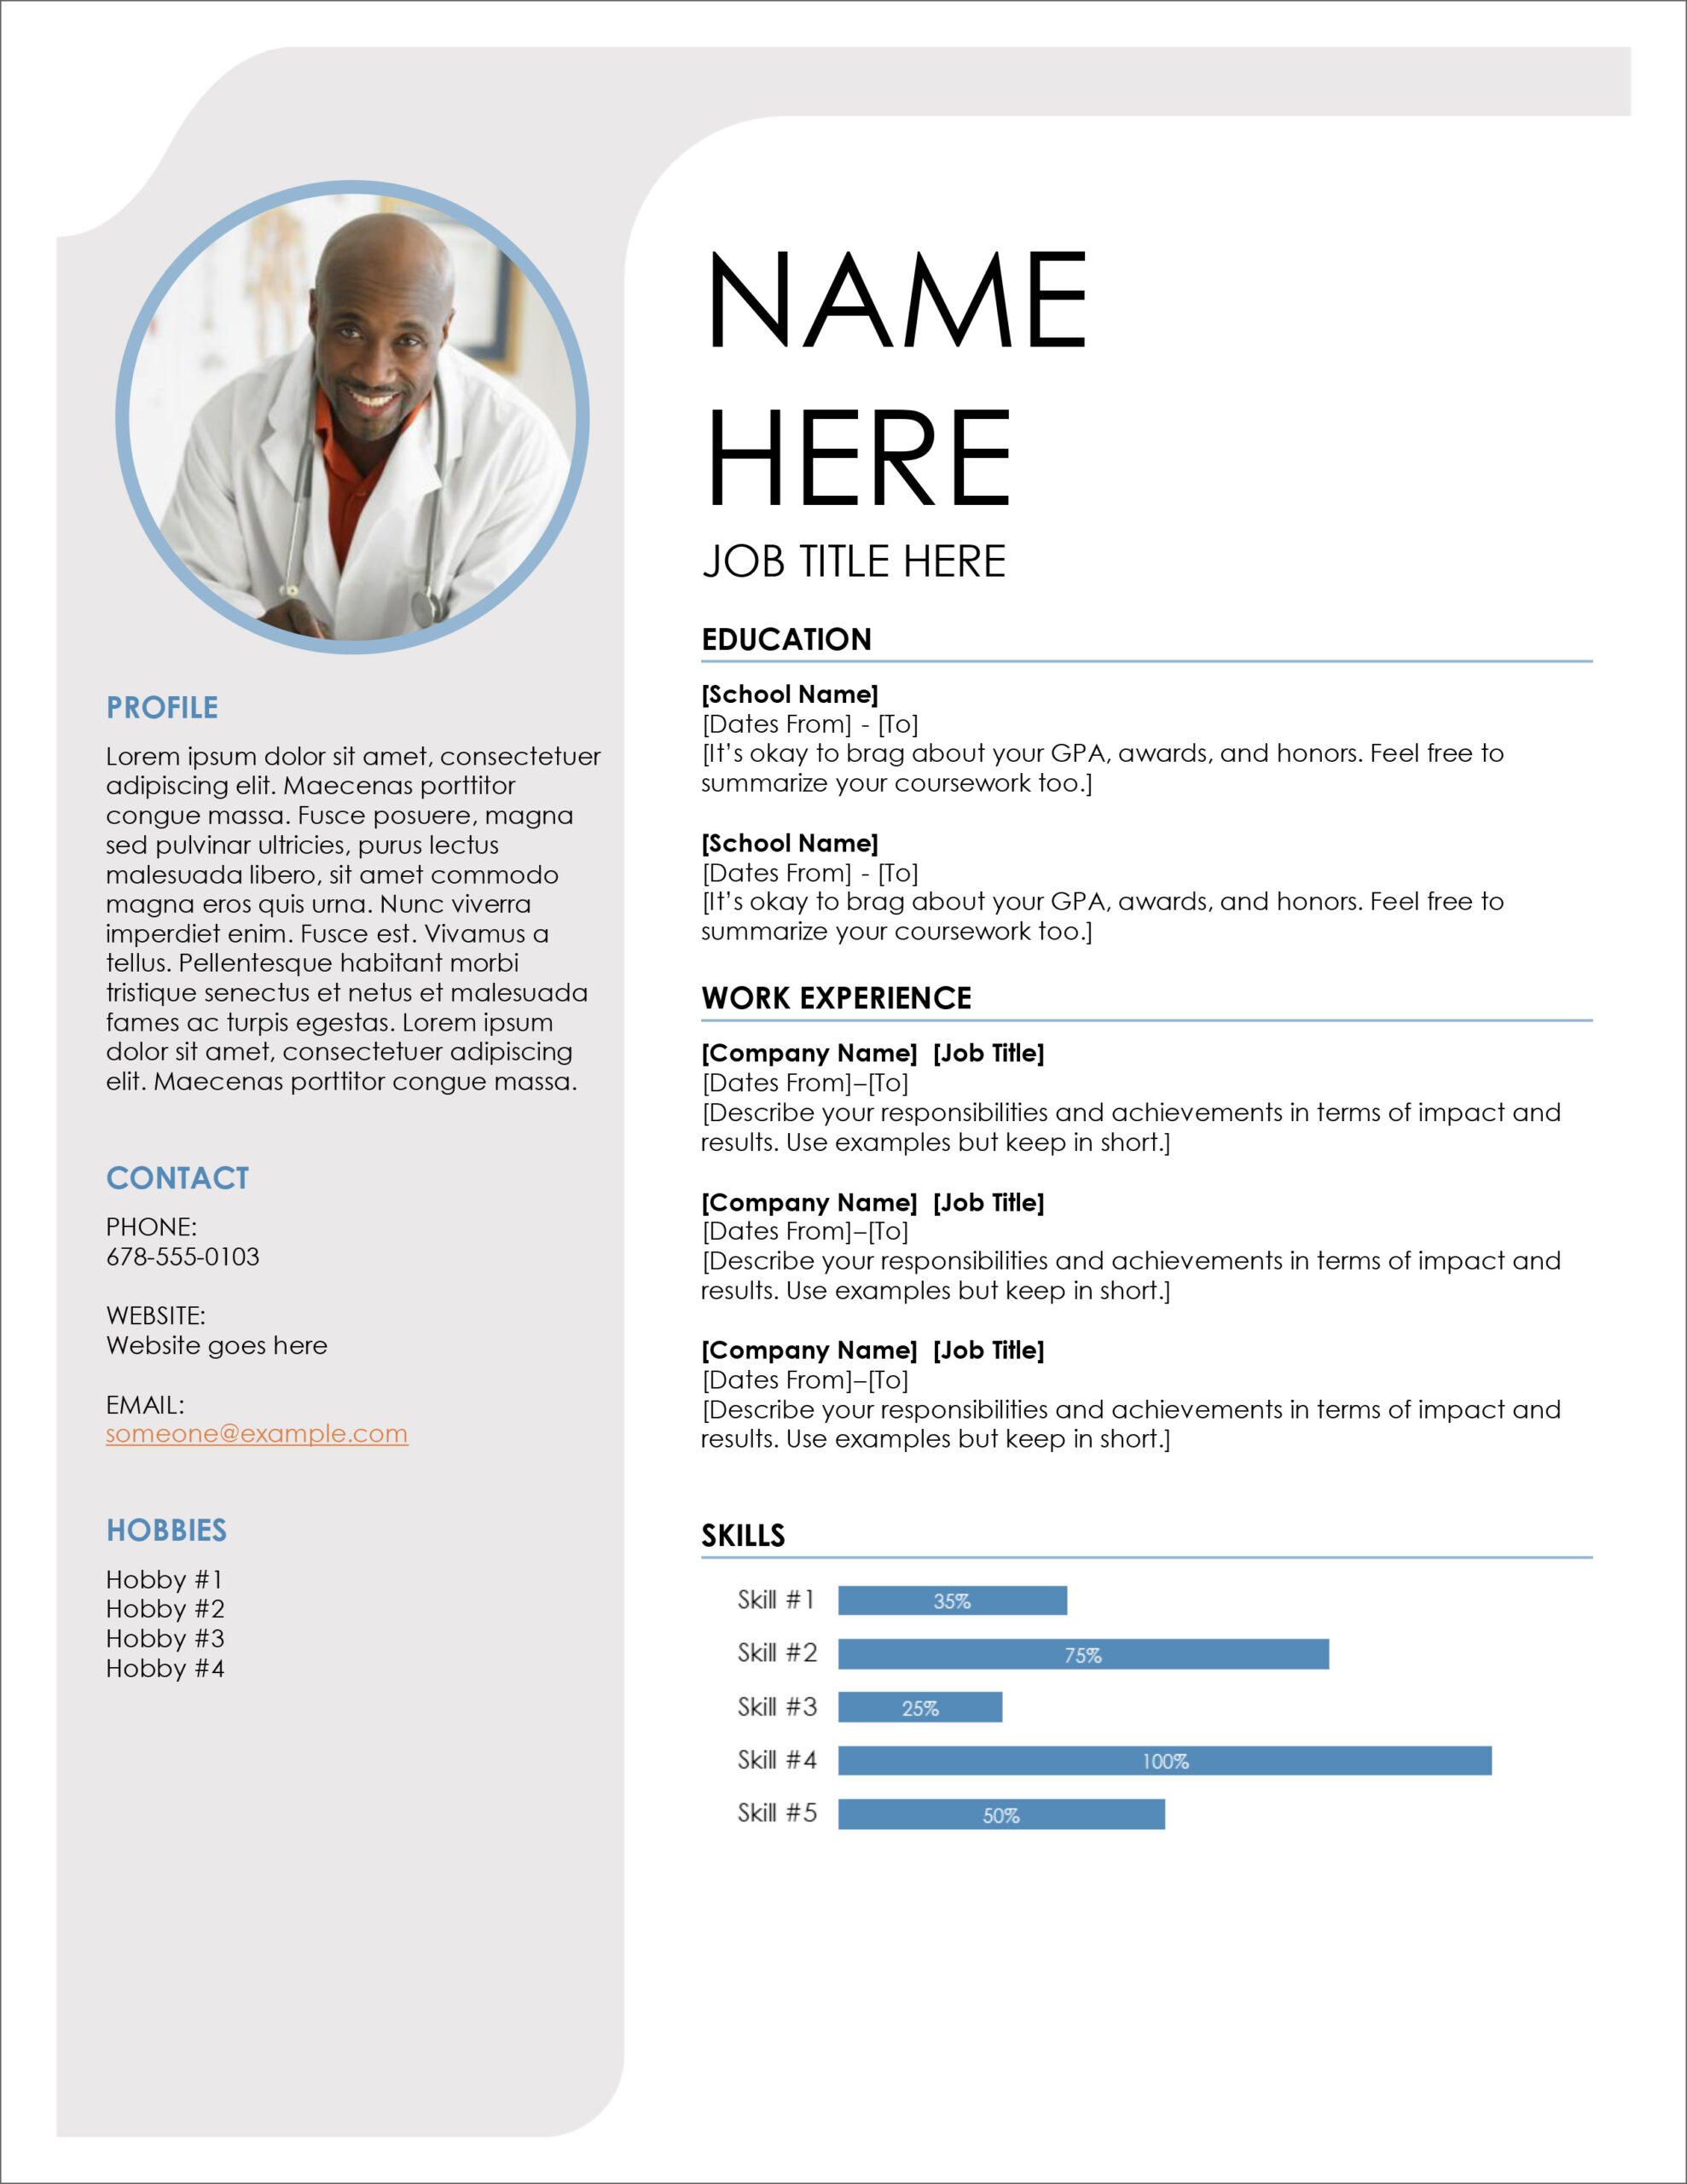 free modern resume cv templates minimalist simple clean design format for freshers with Resume Free Download Resume Format For Freshers With Photo